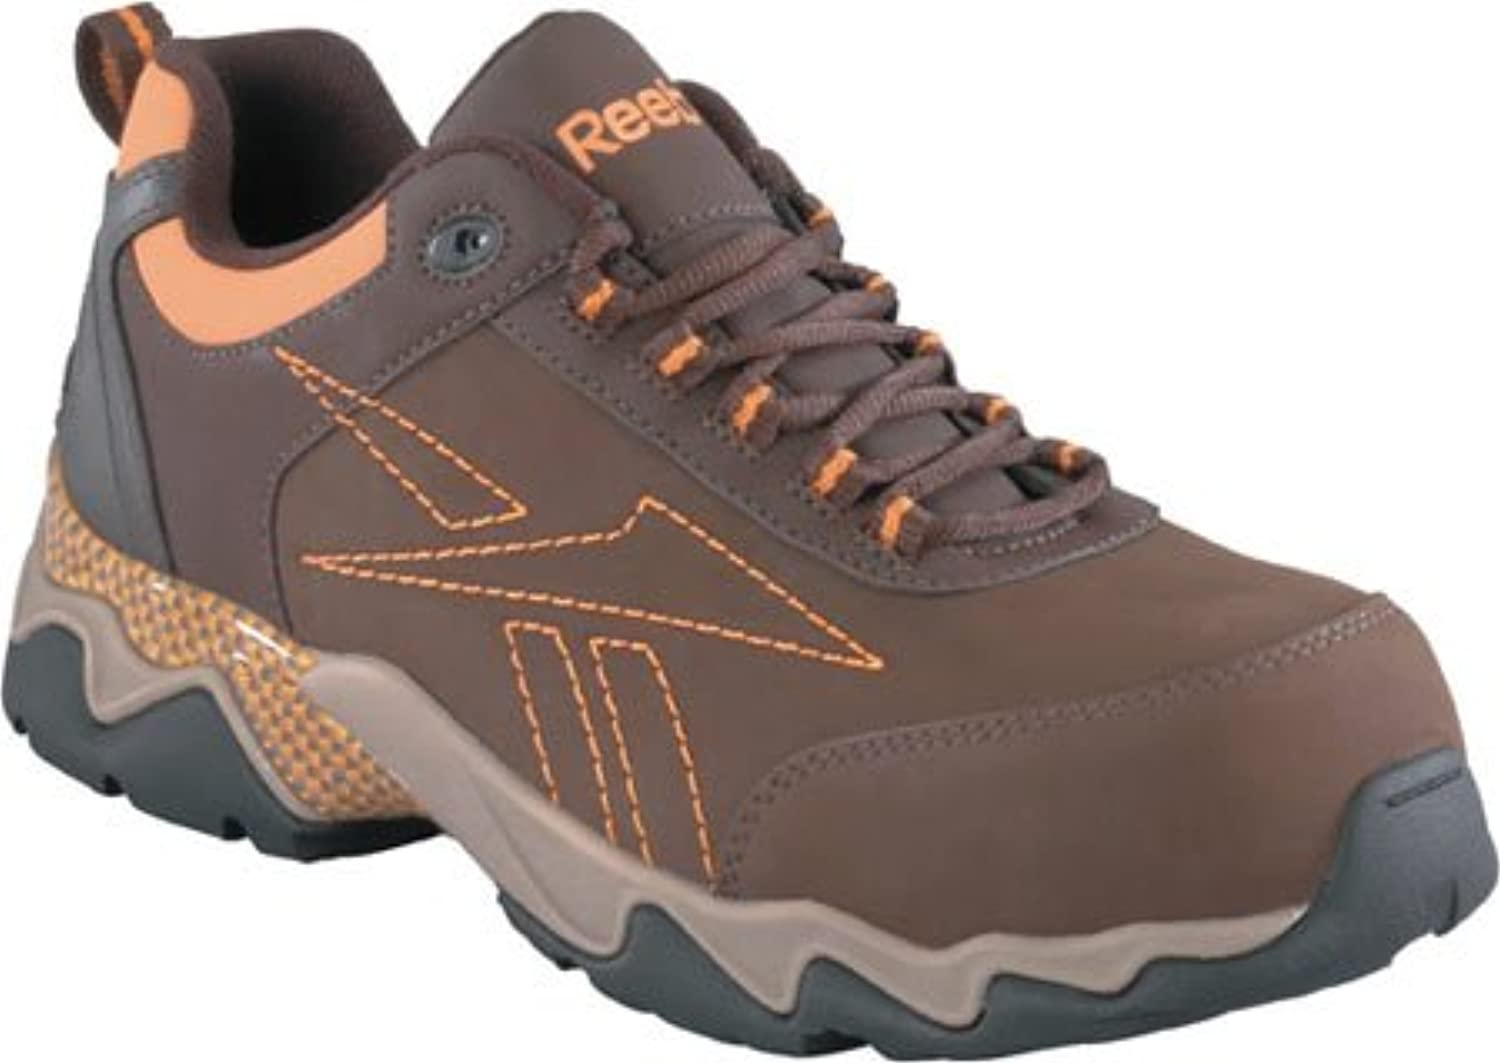 Reebok Mens Brown Leather Athletic Oxford Beamer Composite Toe